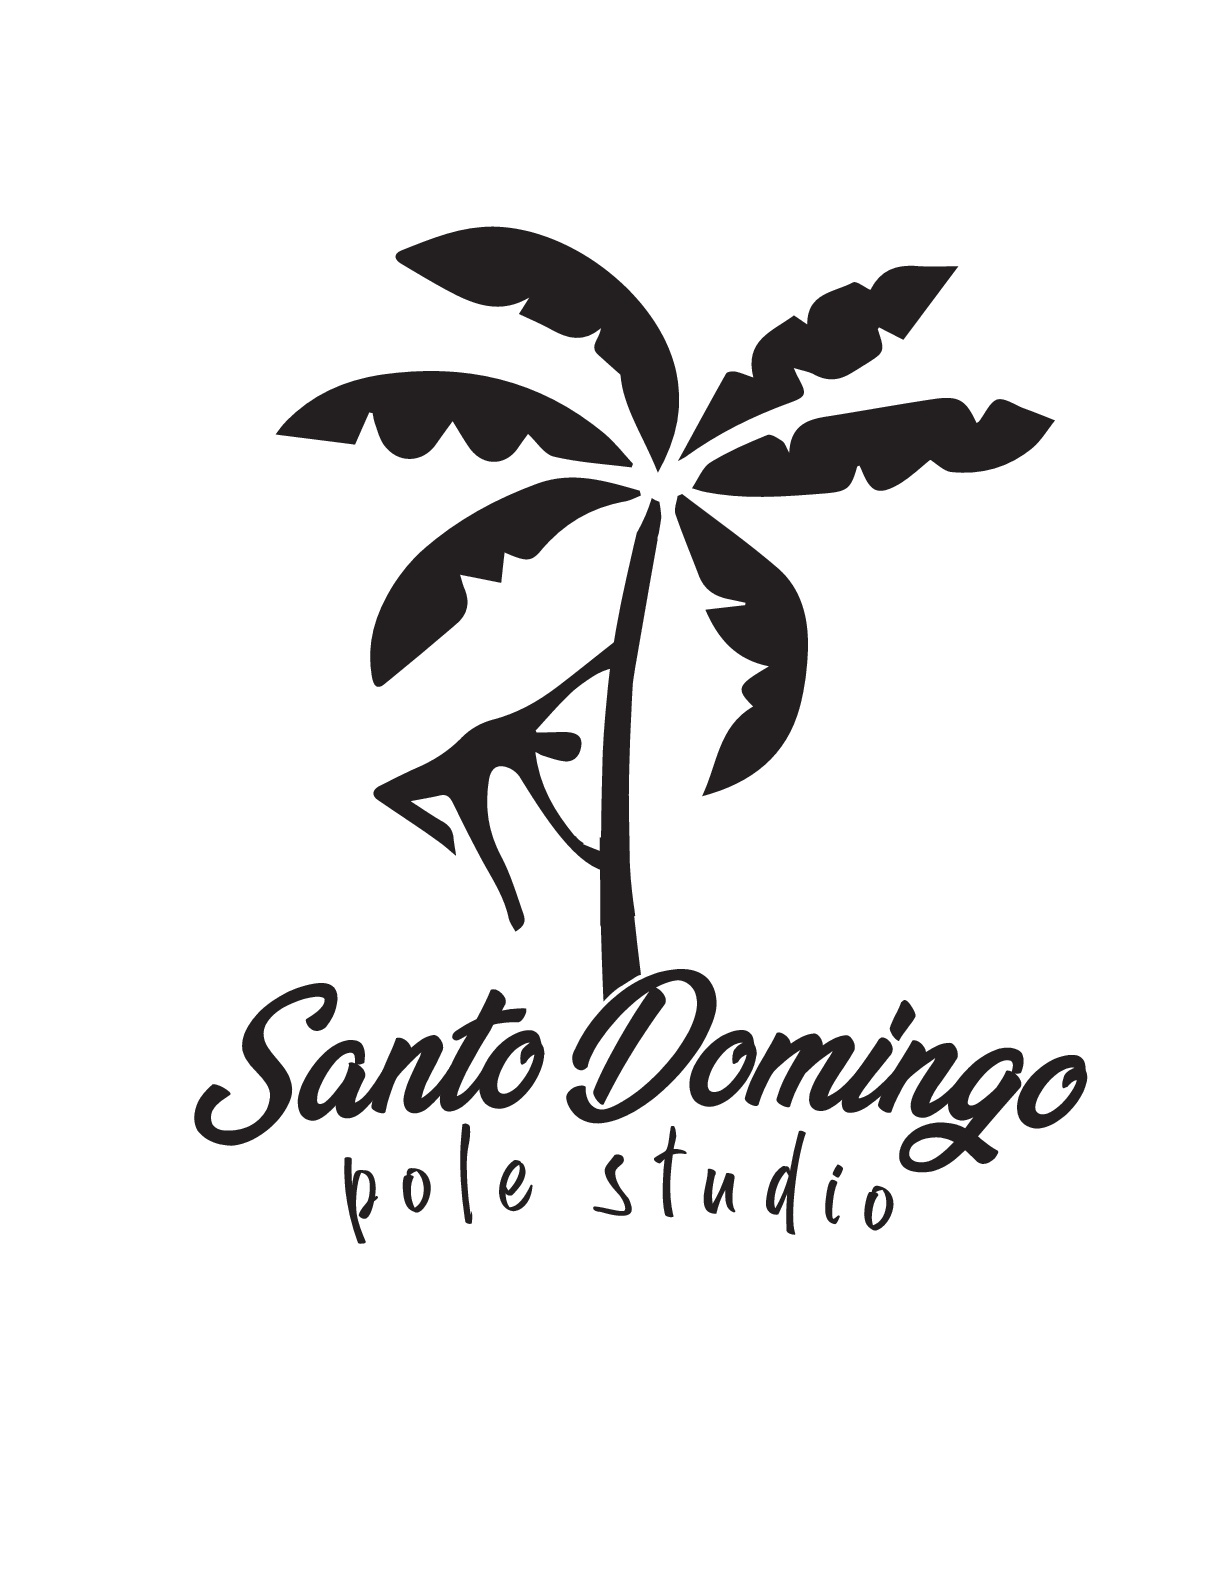 Santo Domingo Pole Studio